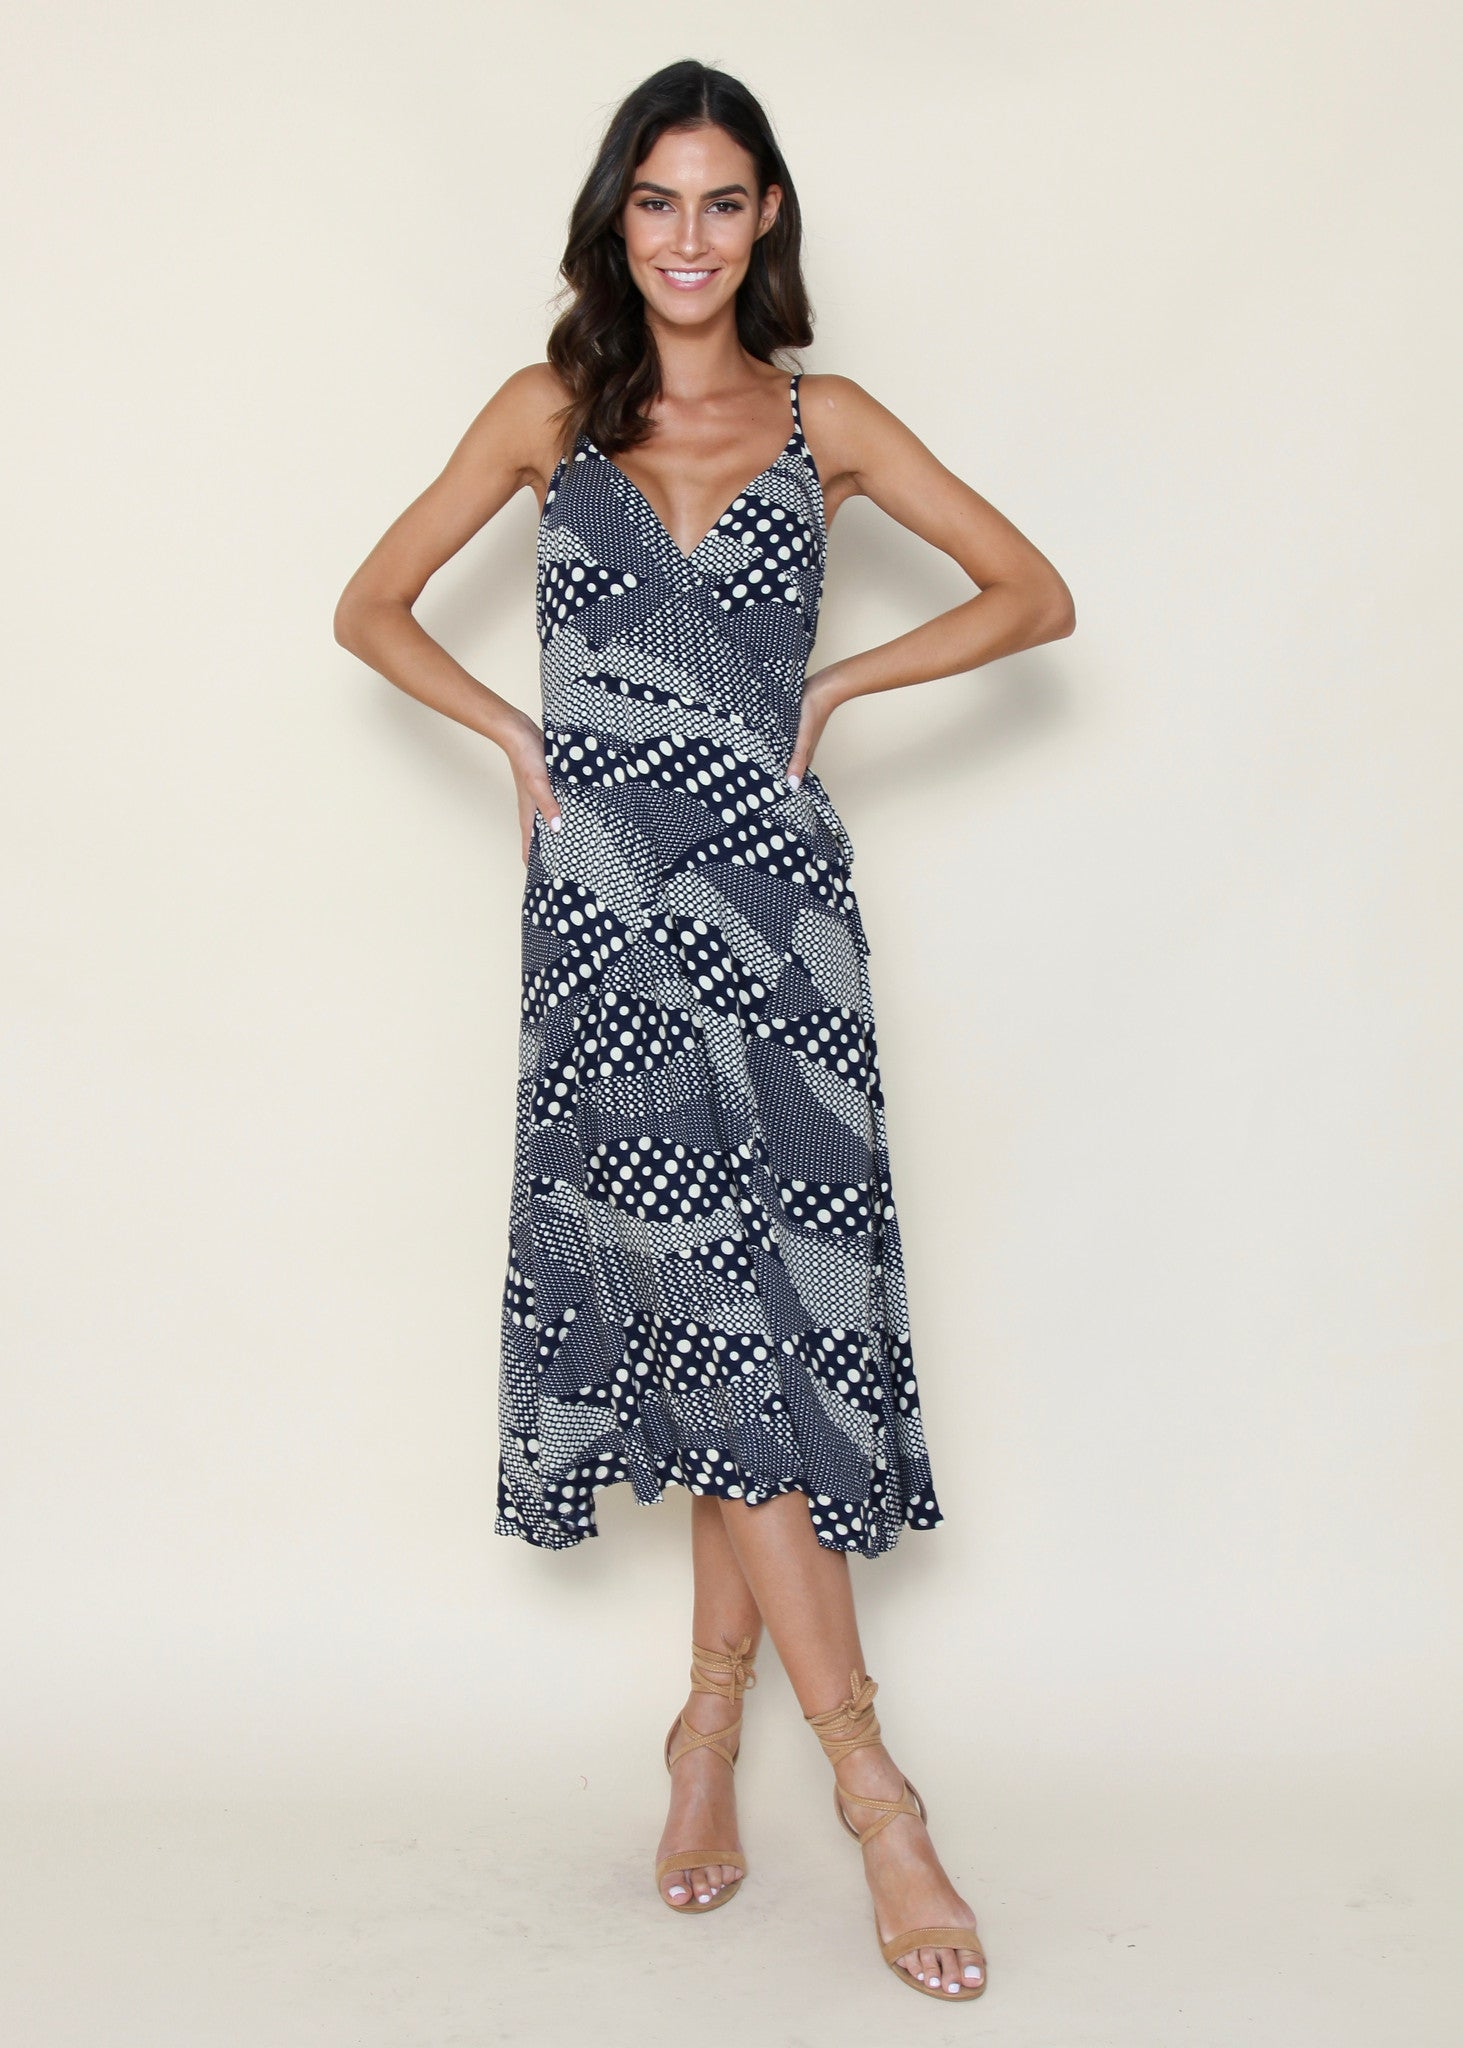 Absolute Lust Midi Dress - Navy Speckle